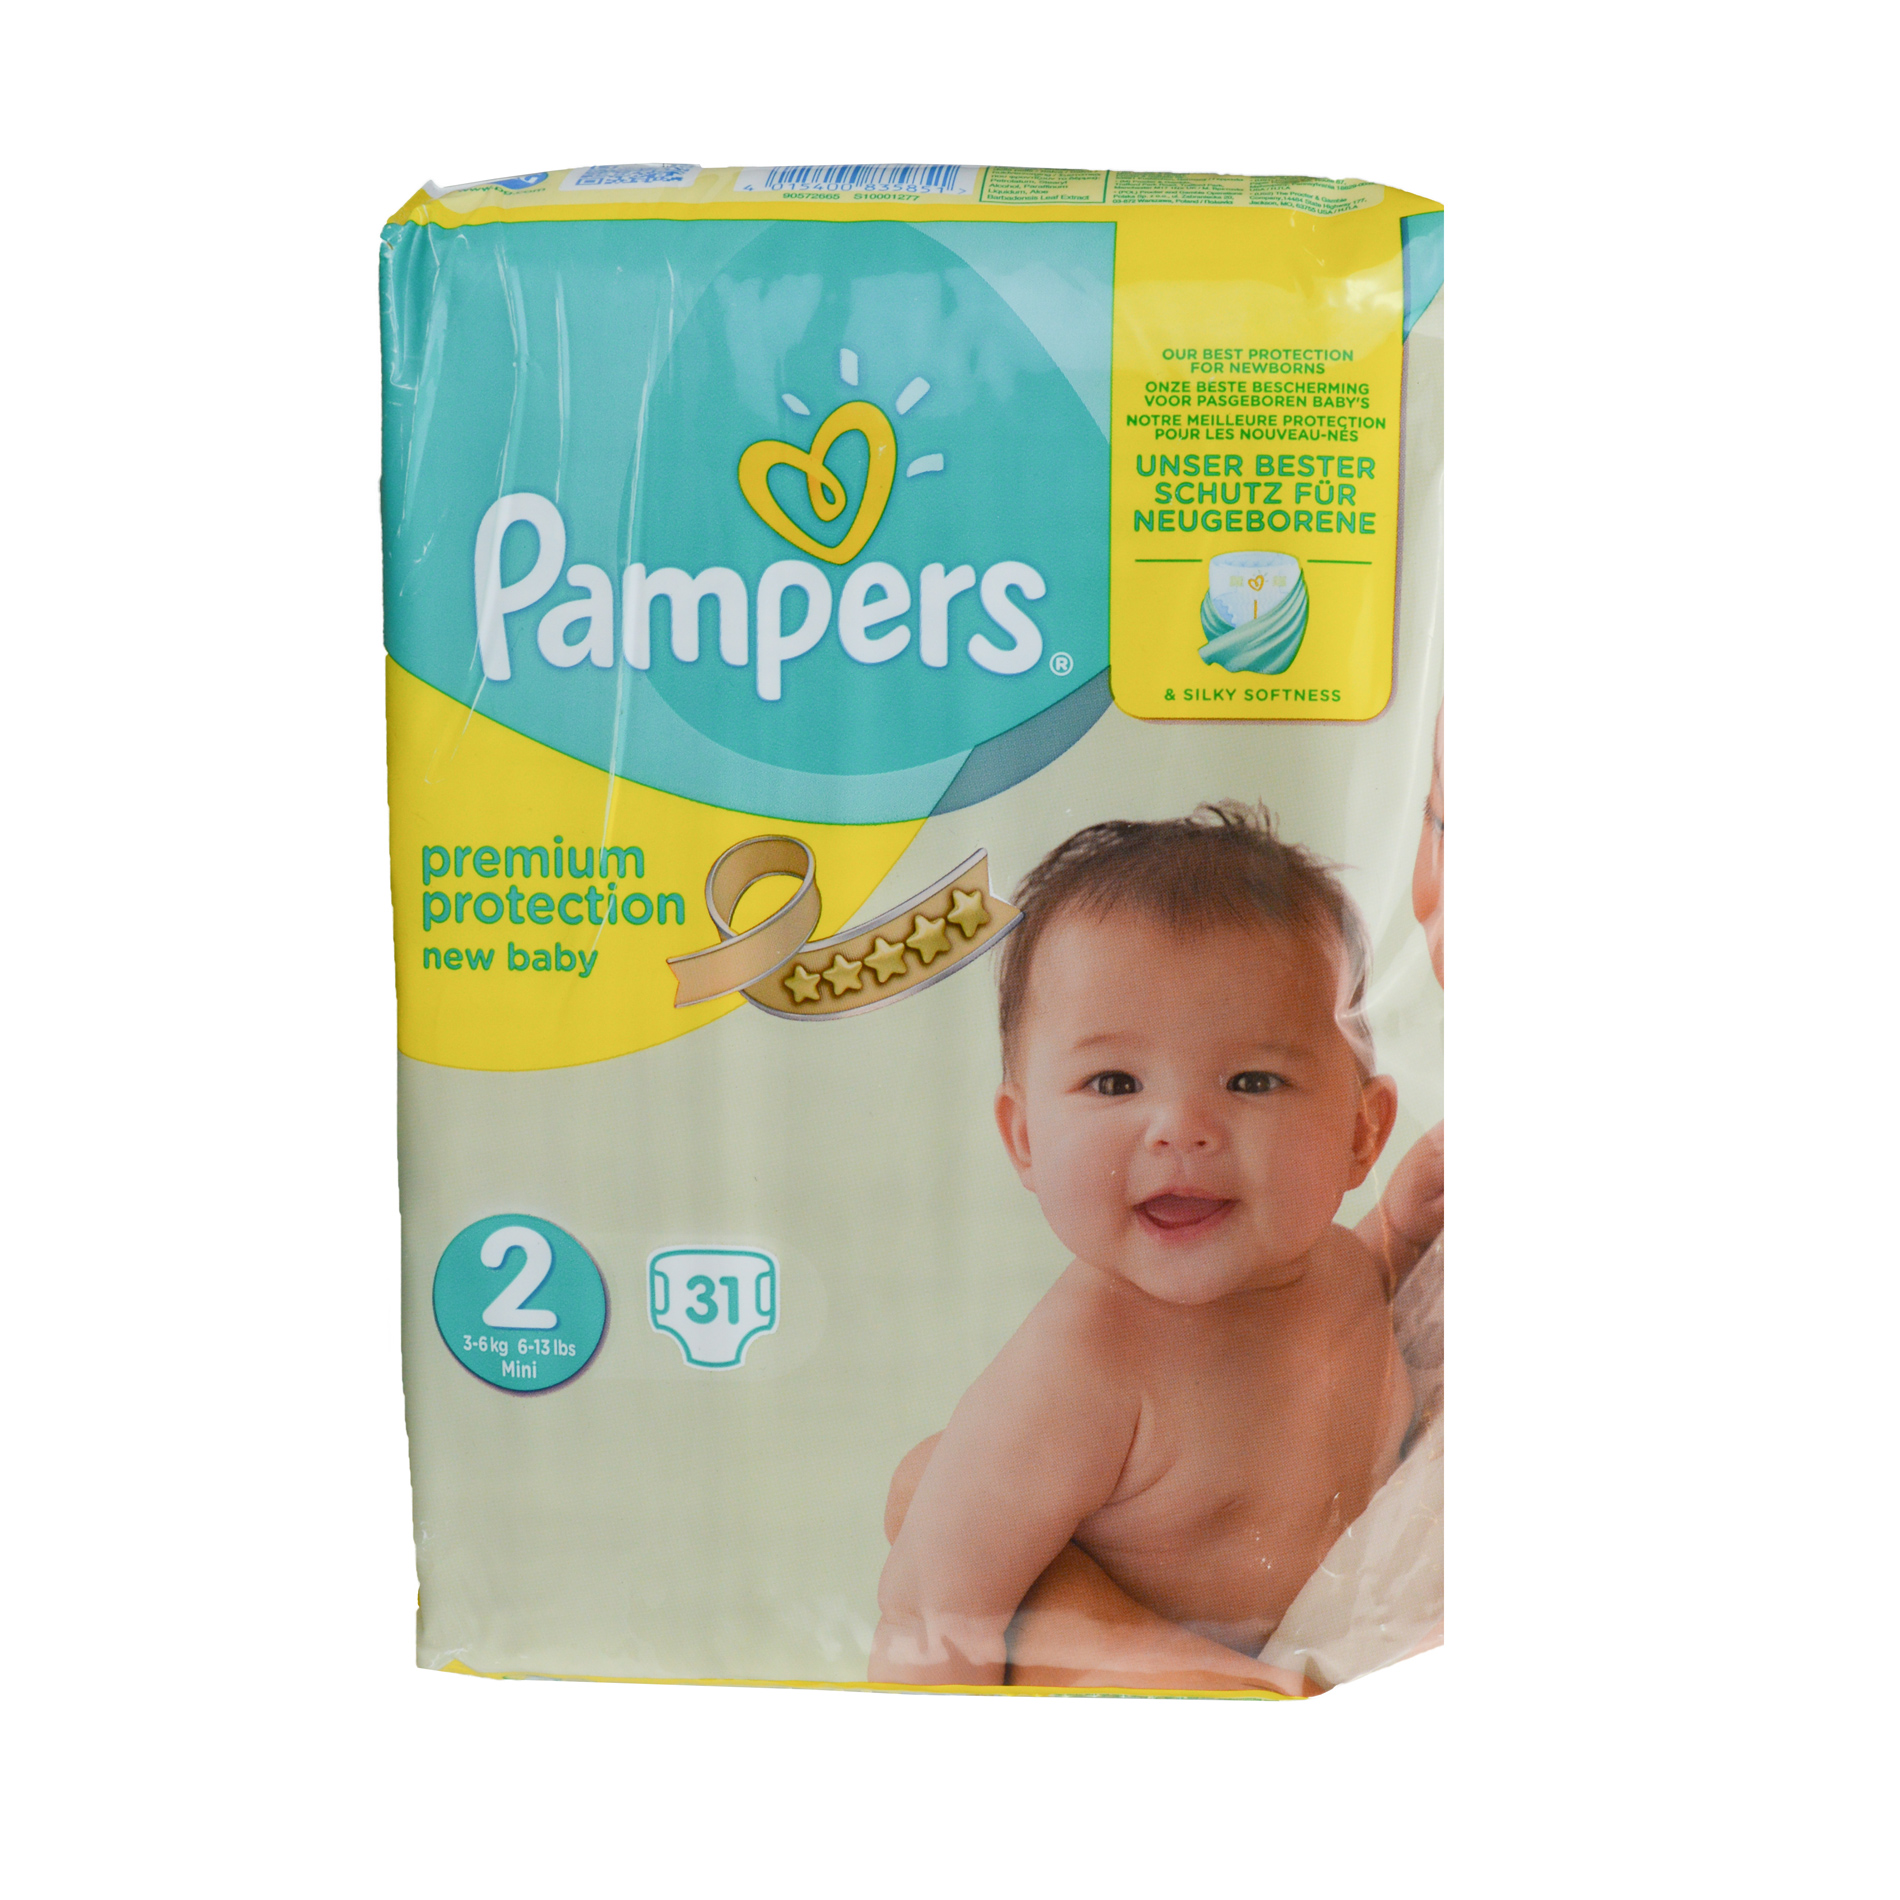 pampers premium protection nappies new baby size 2 mini 2017 31 st ck buy at kidsroom baby. Black Bedroom Furniture Sets. Home Design Ideas